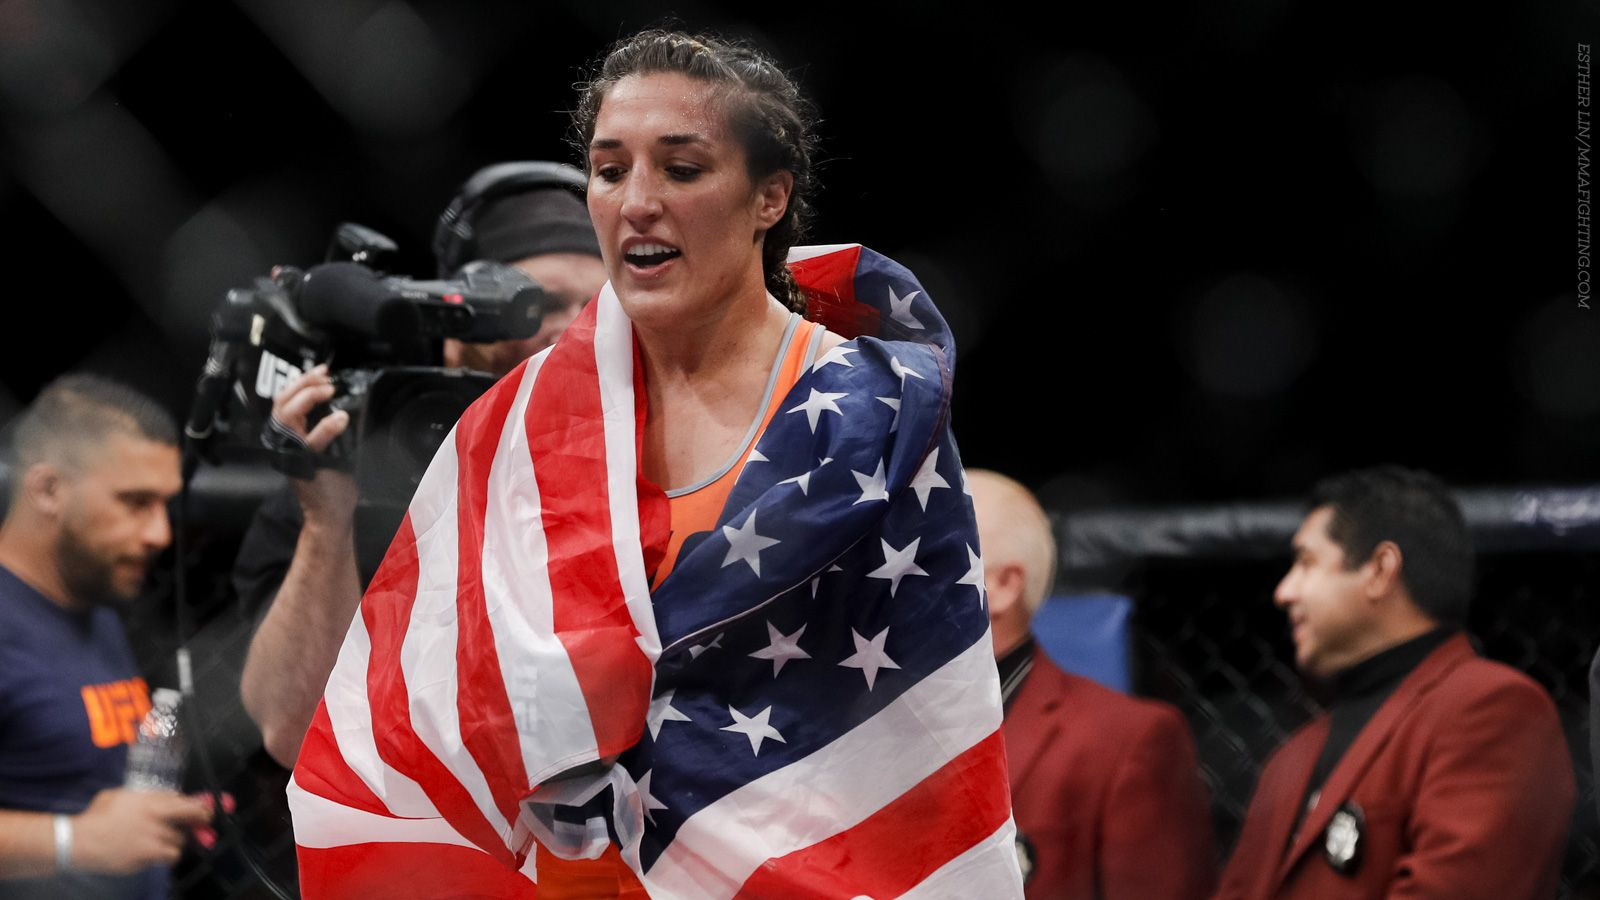 tatiana suarez  viviane pereira meet at ufc fight night